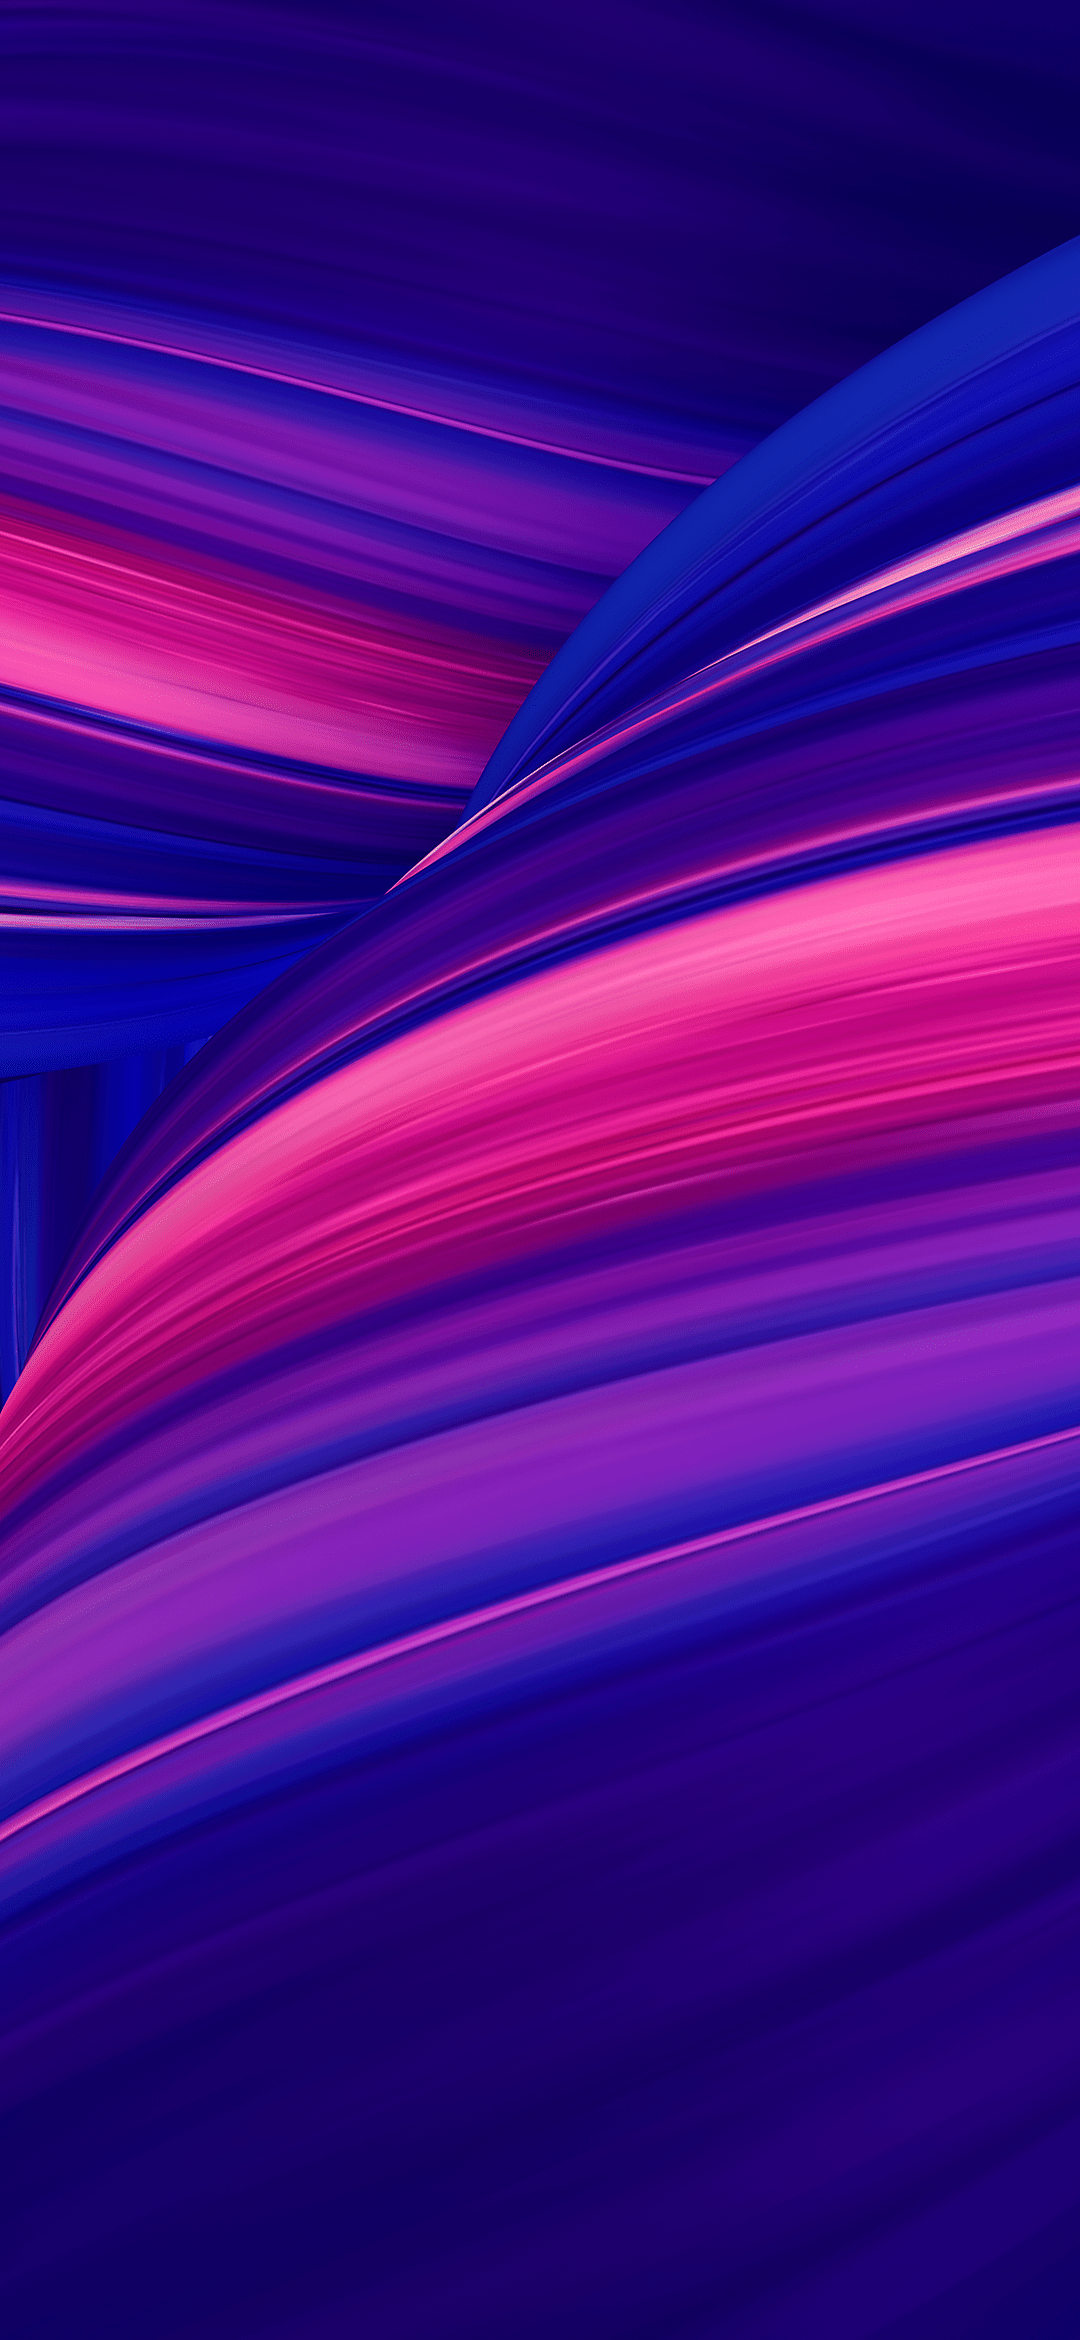 Download Oppo F9 / F9 Pro Wallpapers - Stock Oppo Images